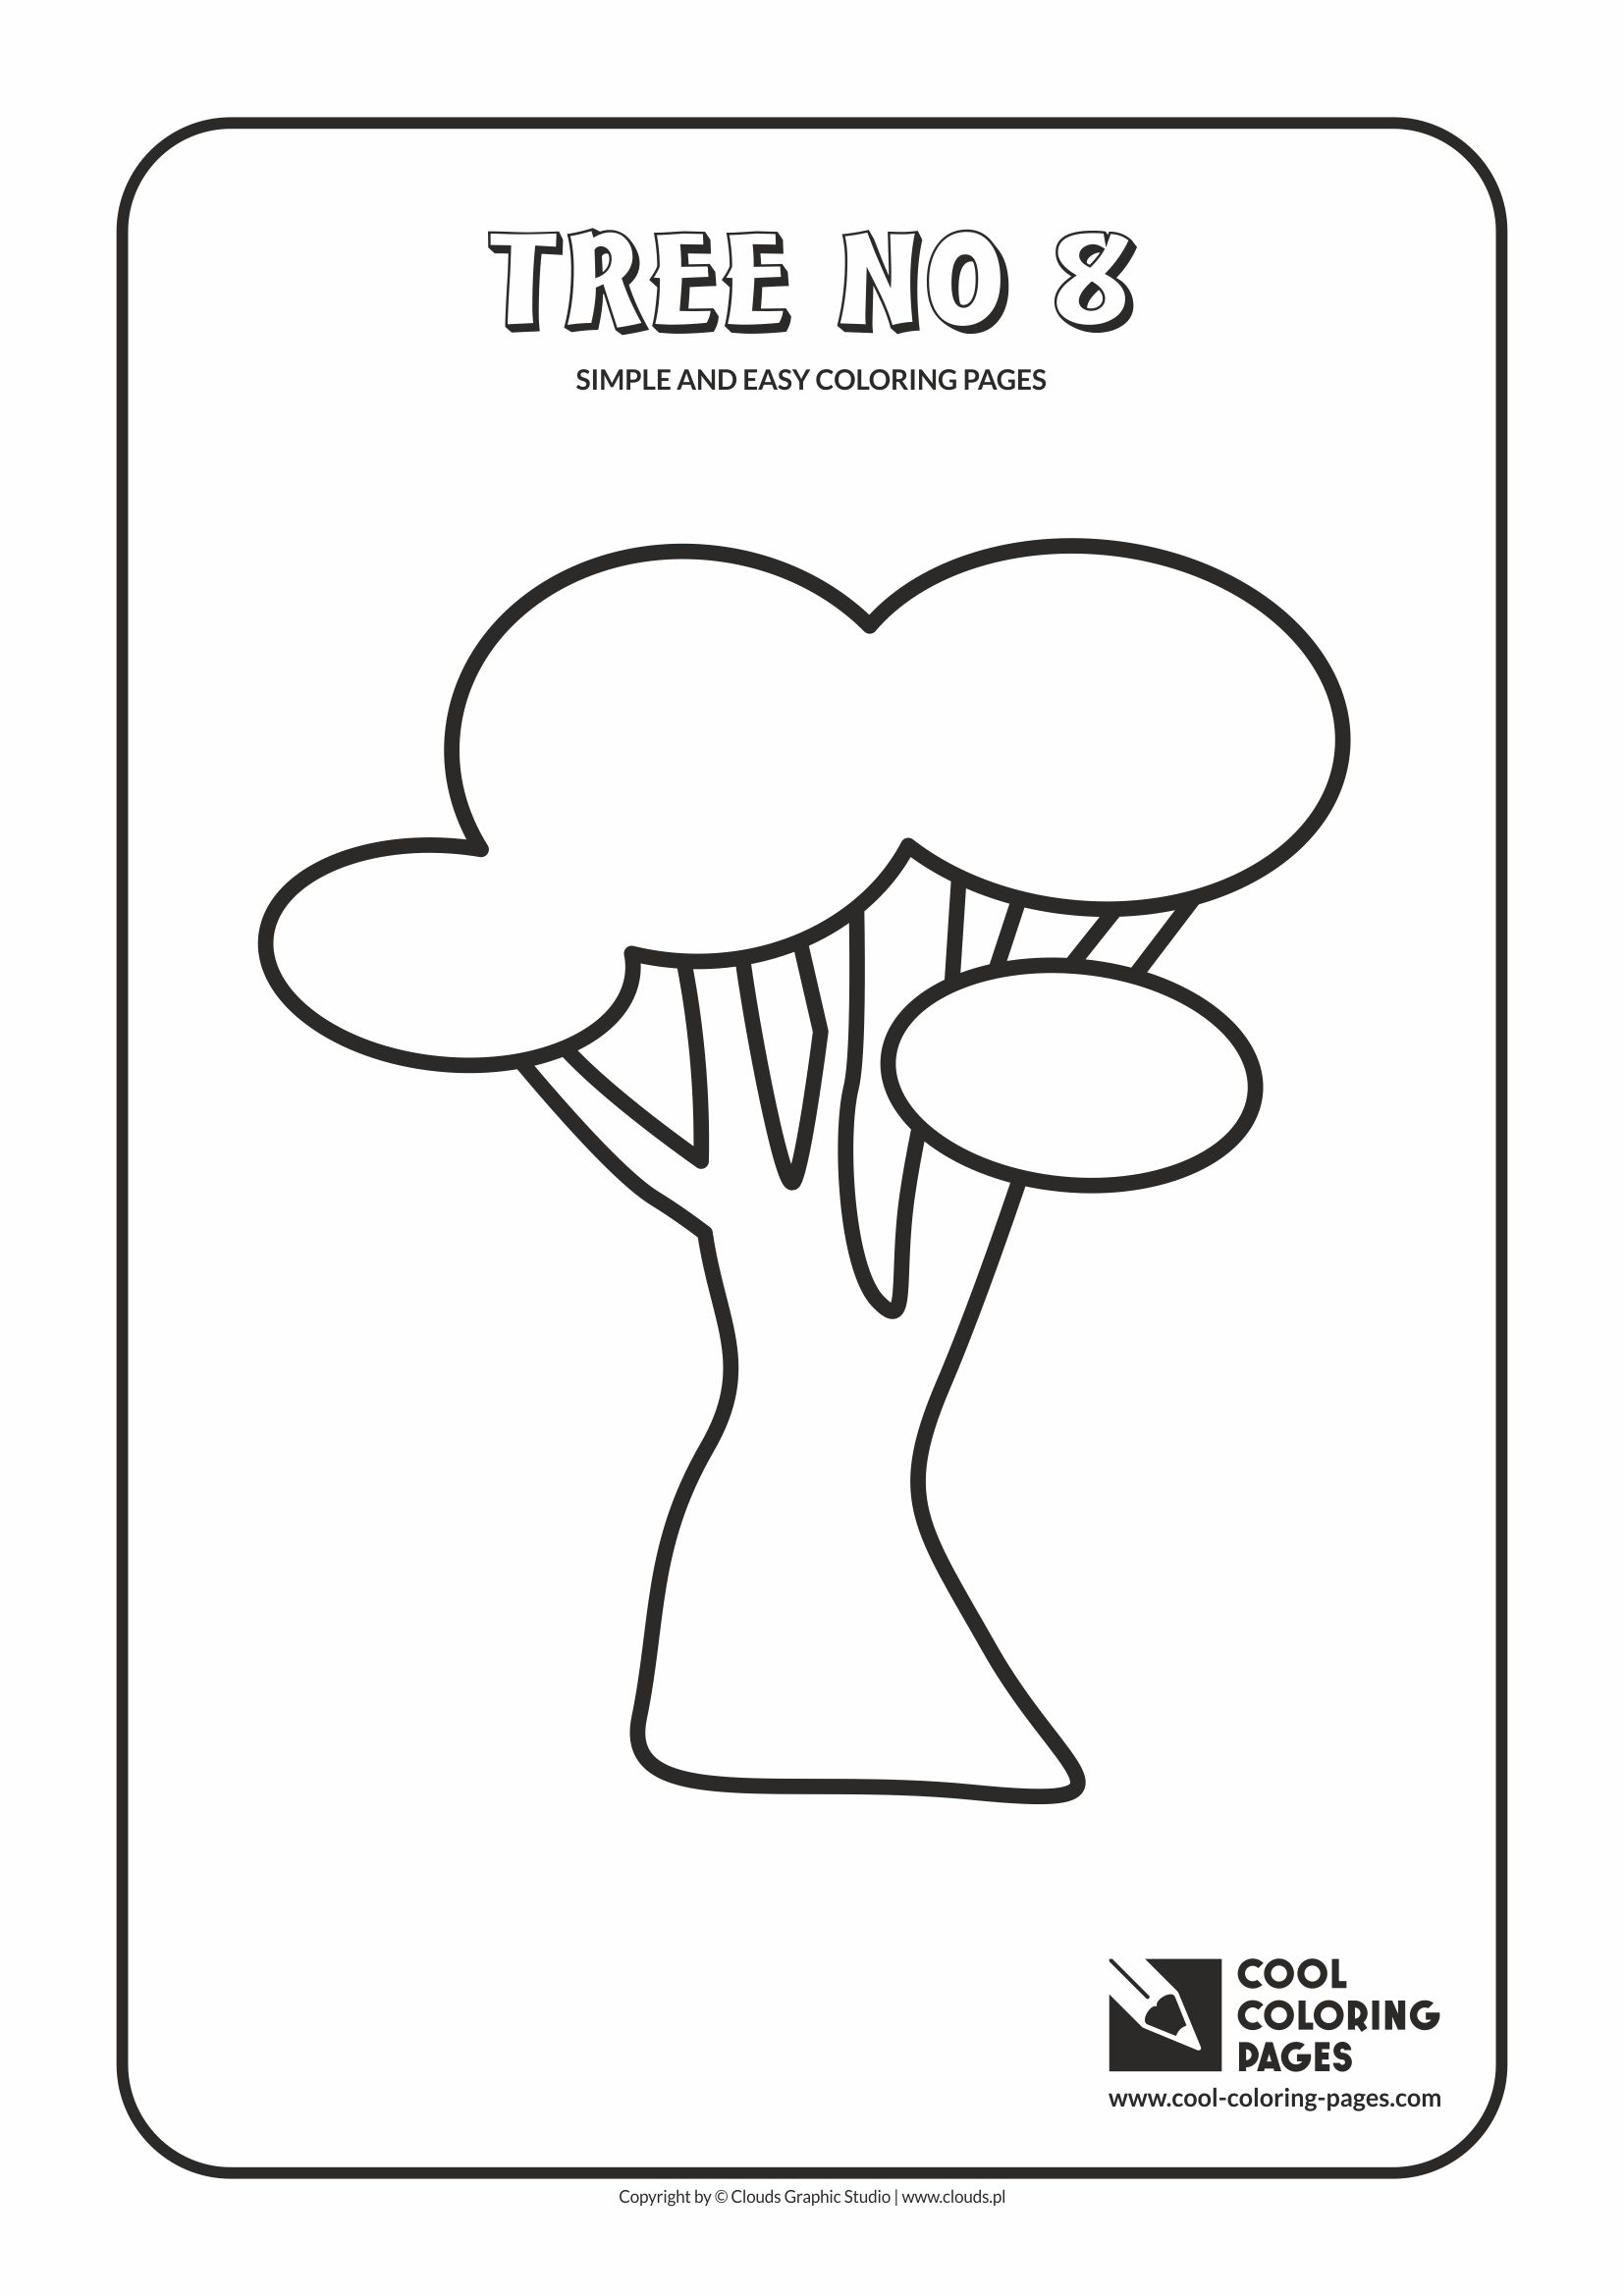 cool coloring pages easy - photo#21